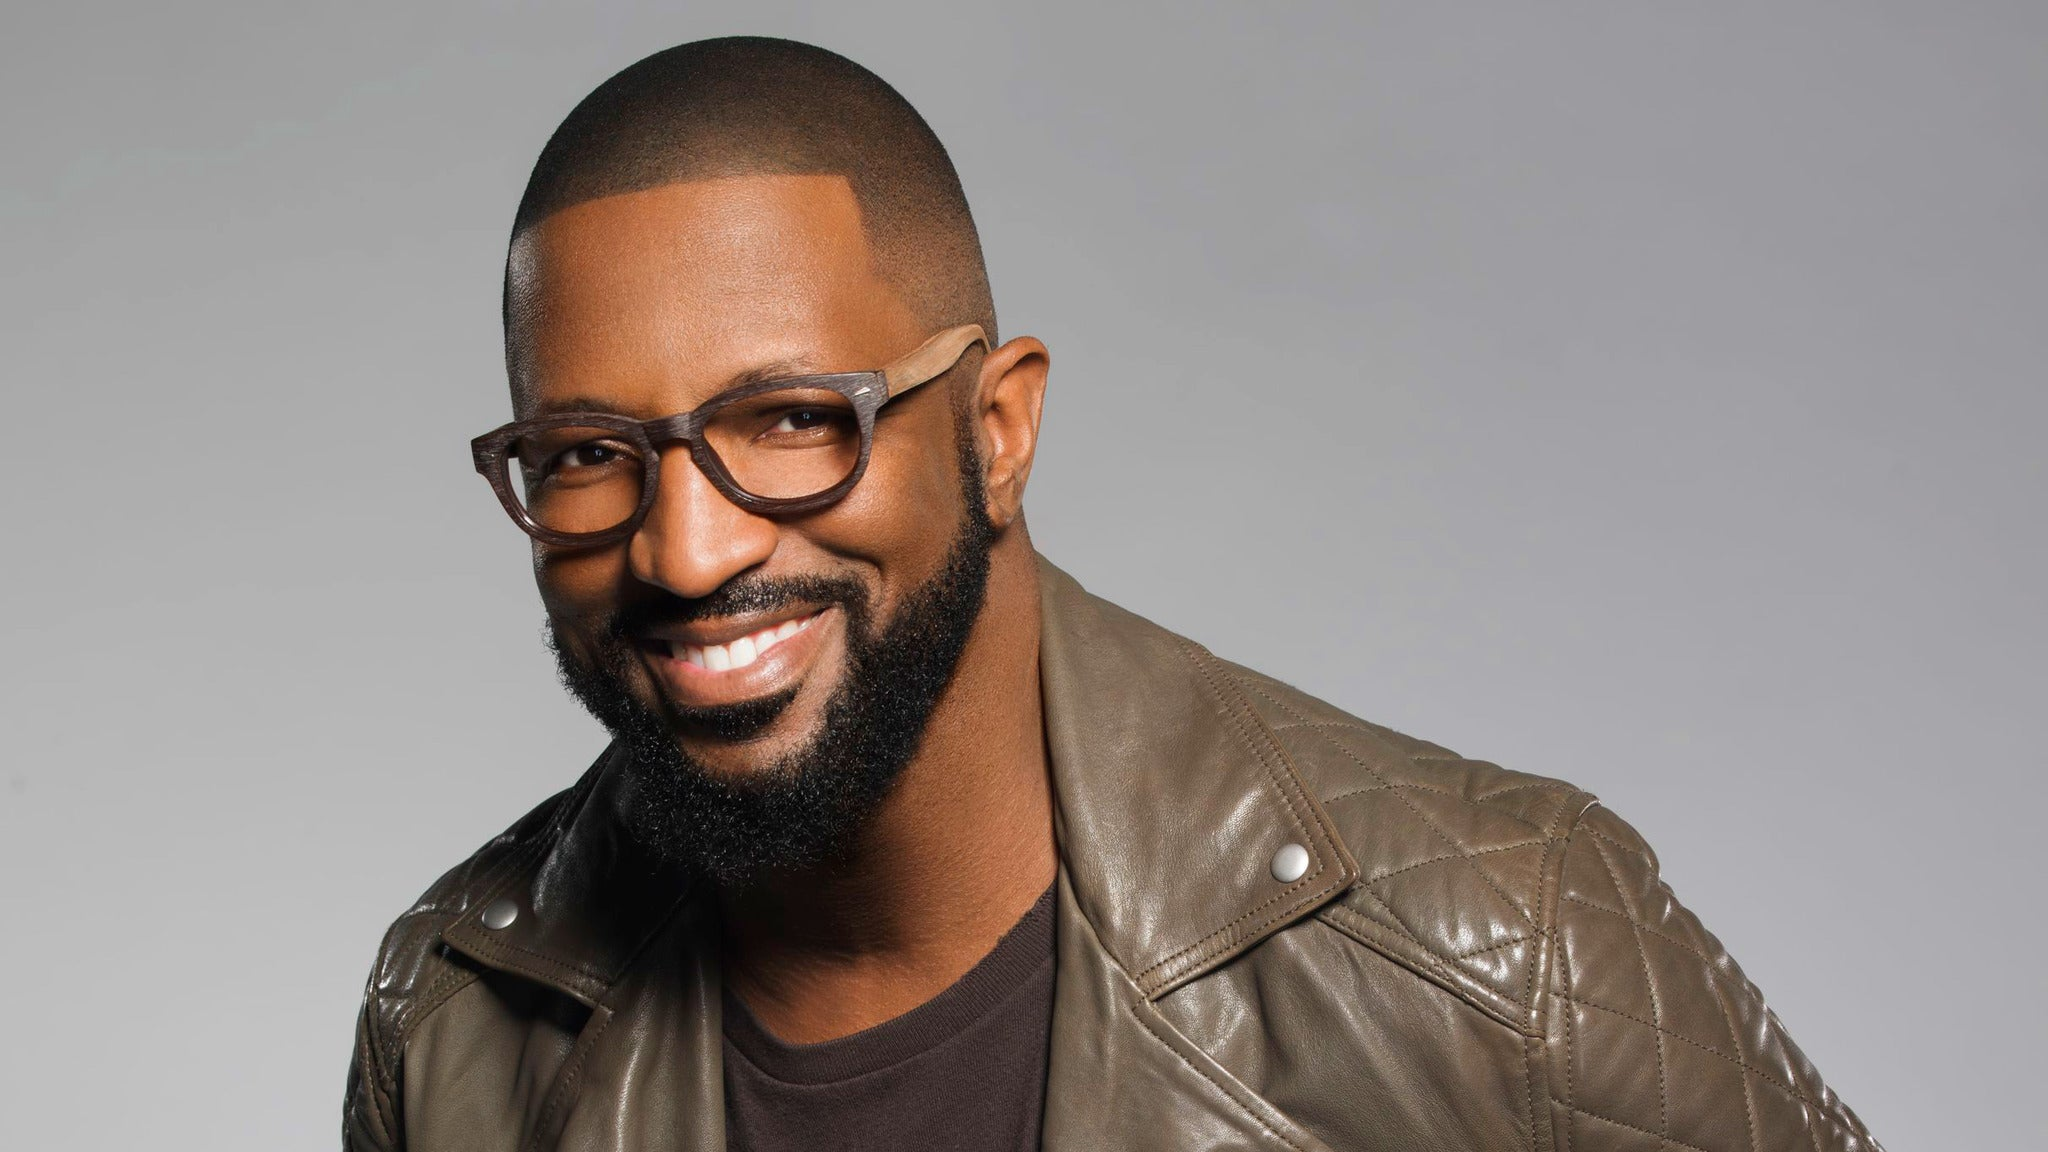 Rickey Smiley: Y'all Goin' to Hell Tour presale code for early tickets in St. Louis